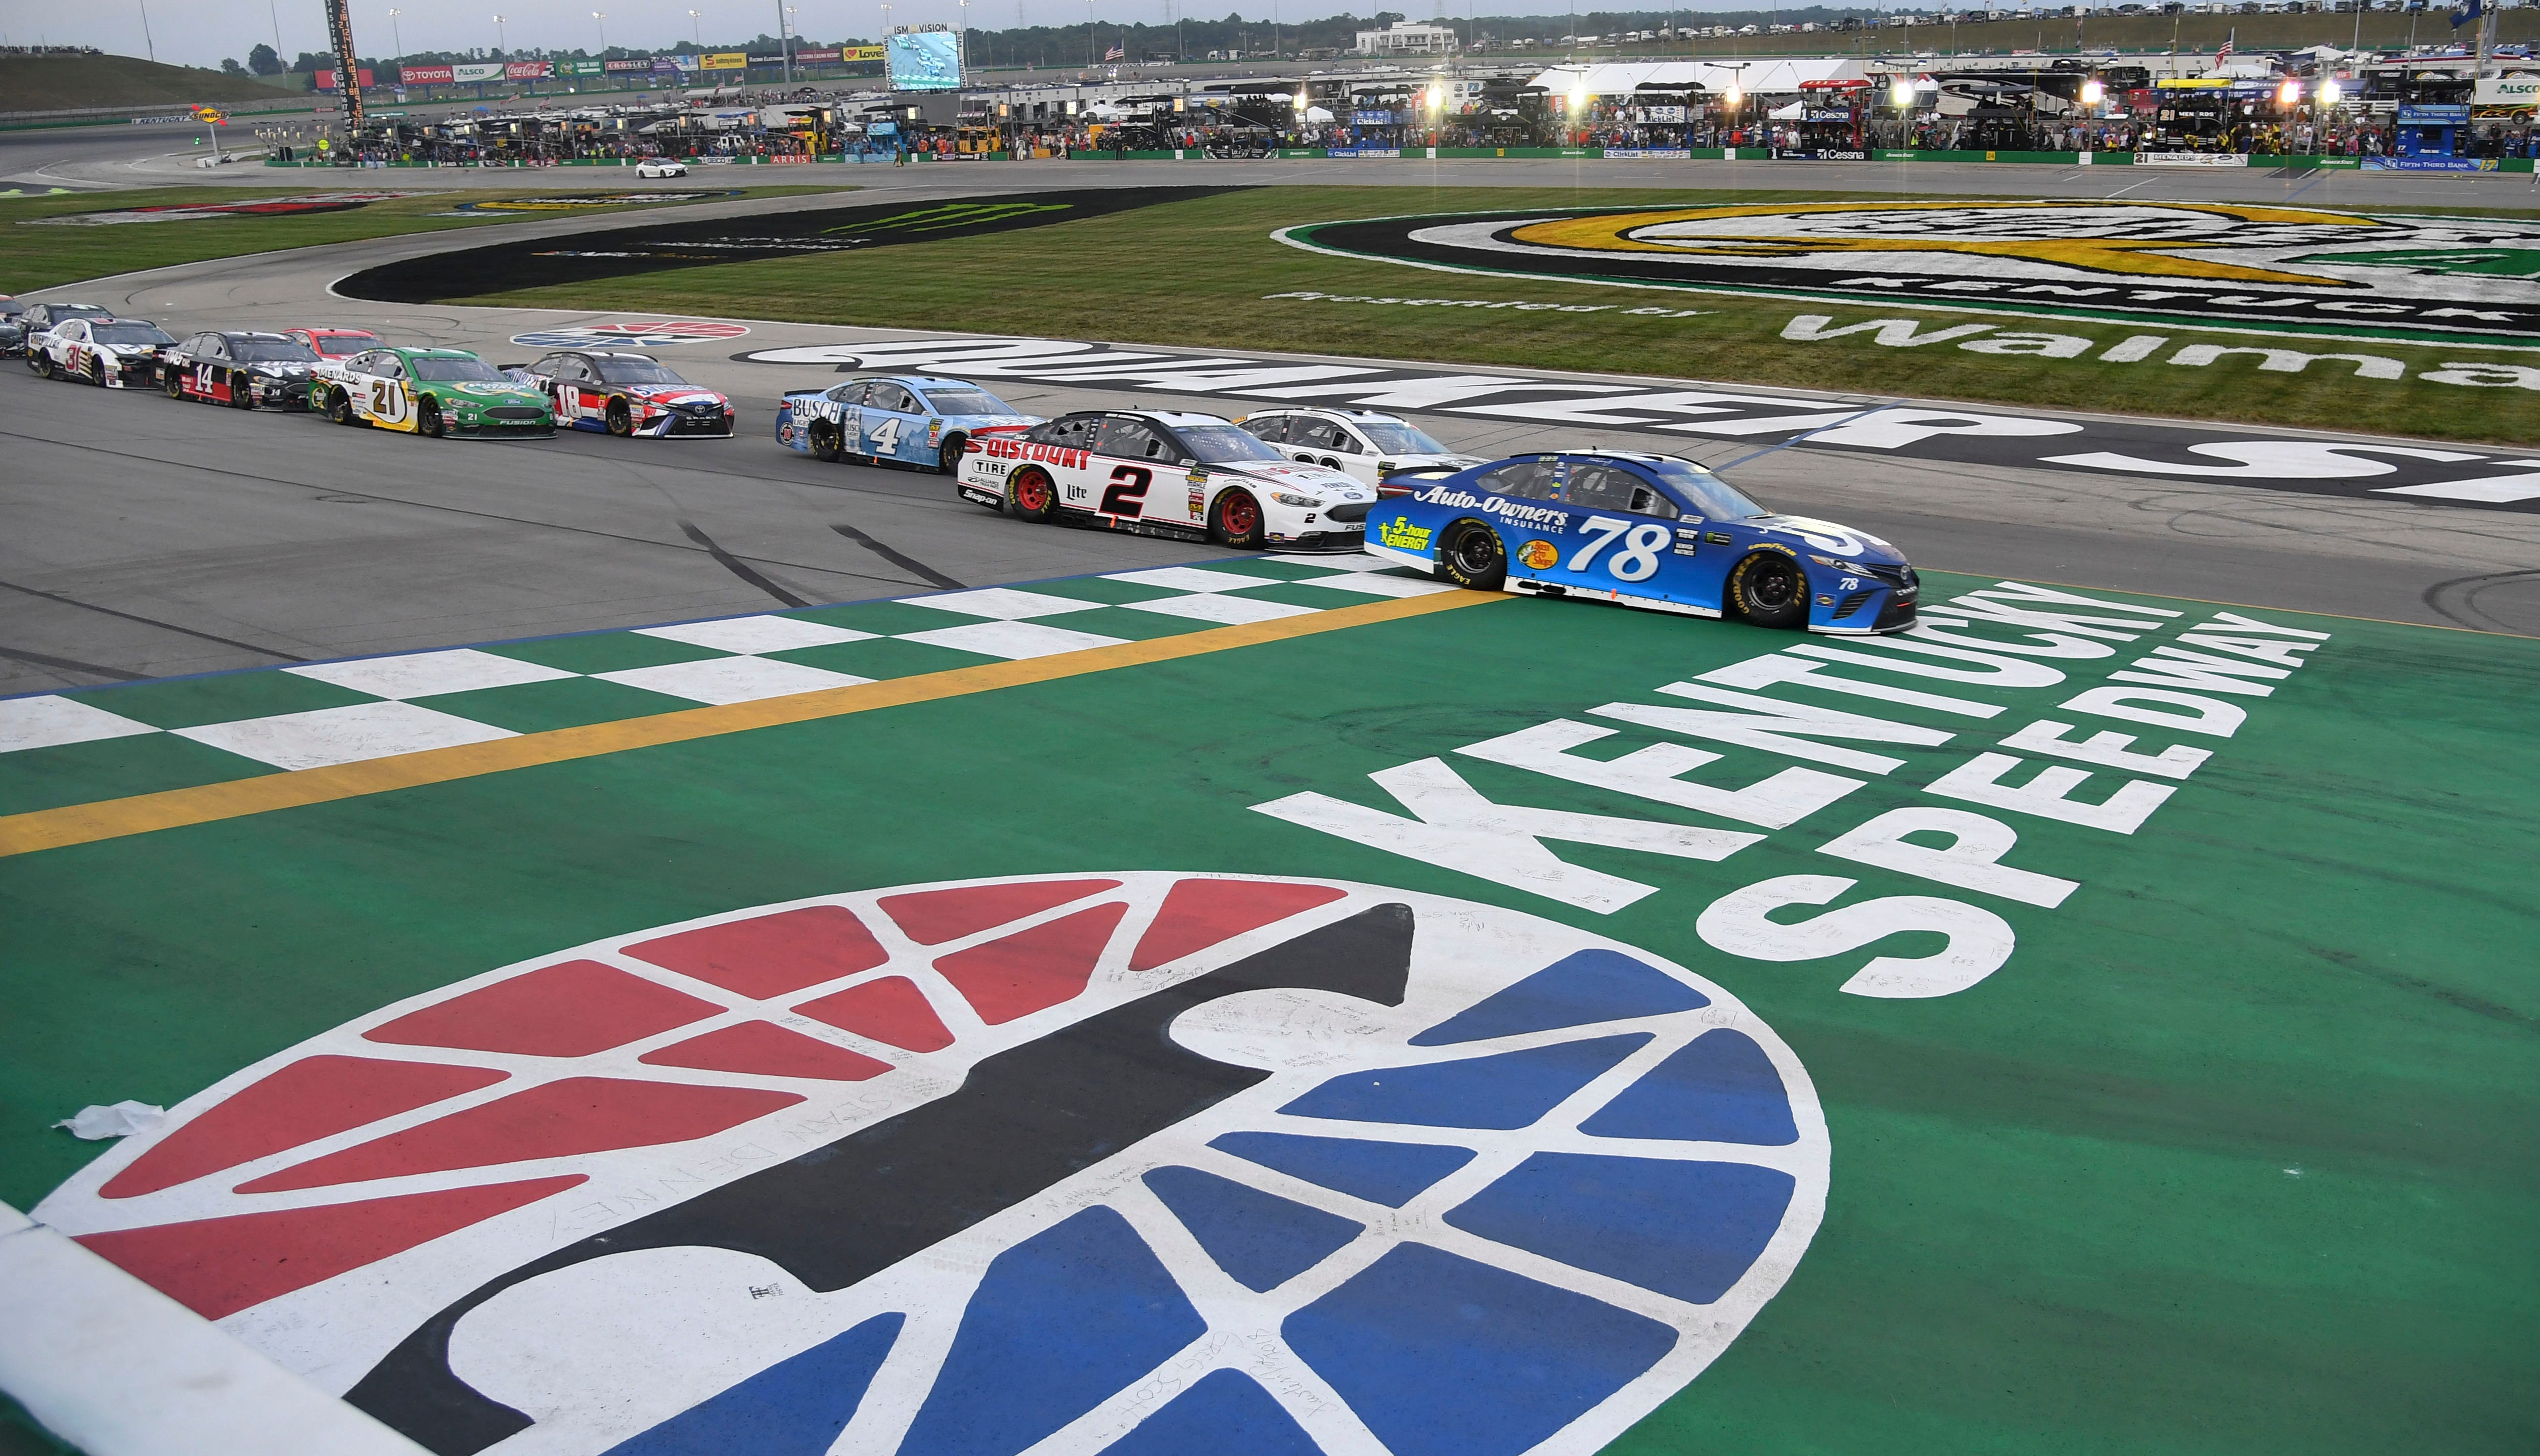 NASCAR: Quaker State 400 at Kentucky starting lineup, TV, green flag time – The Tennessean